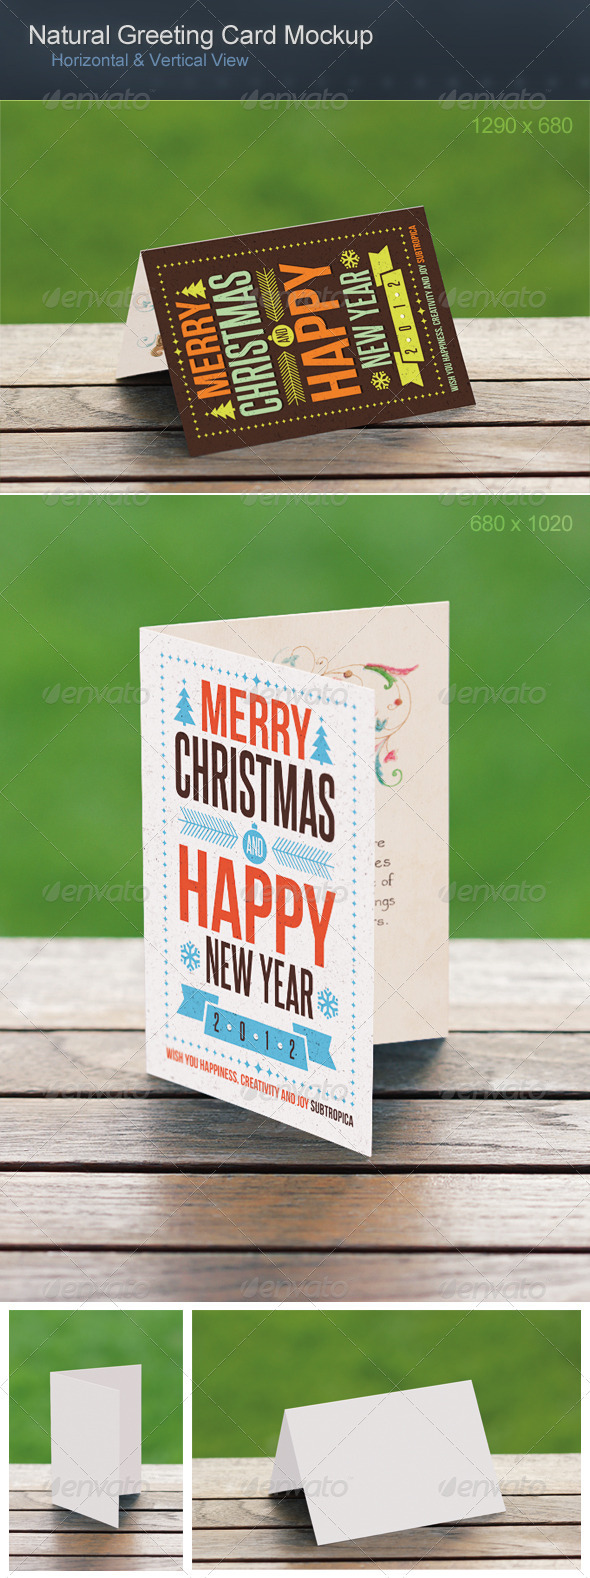 Natural Greeting Card Mockup - Miscellaneous Print